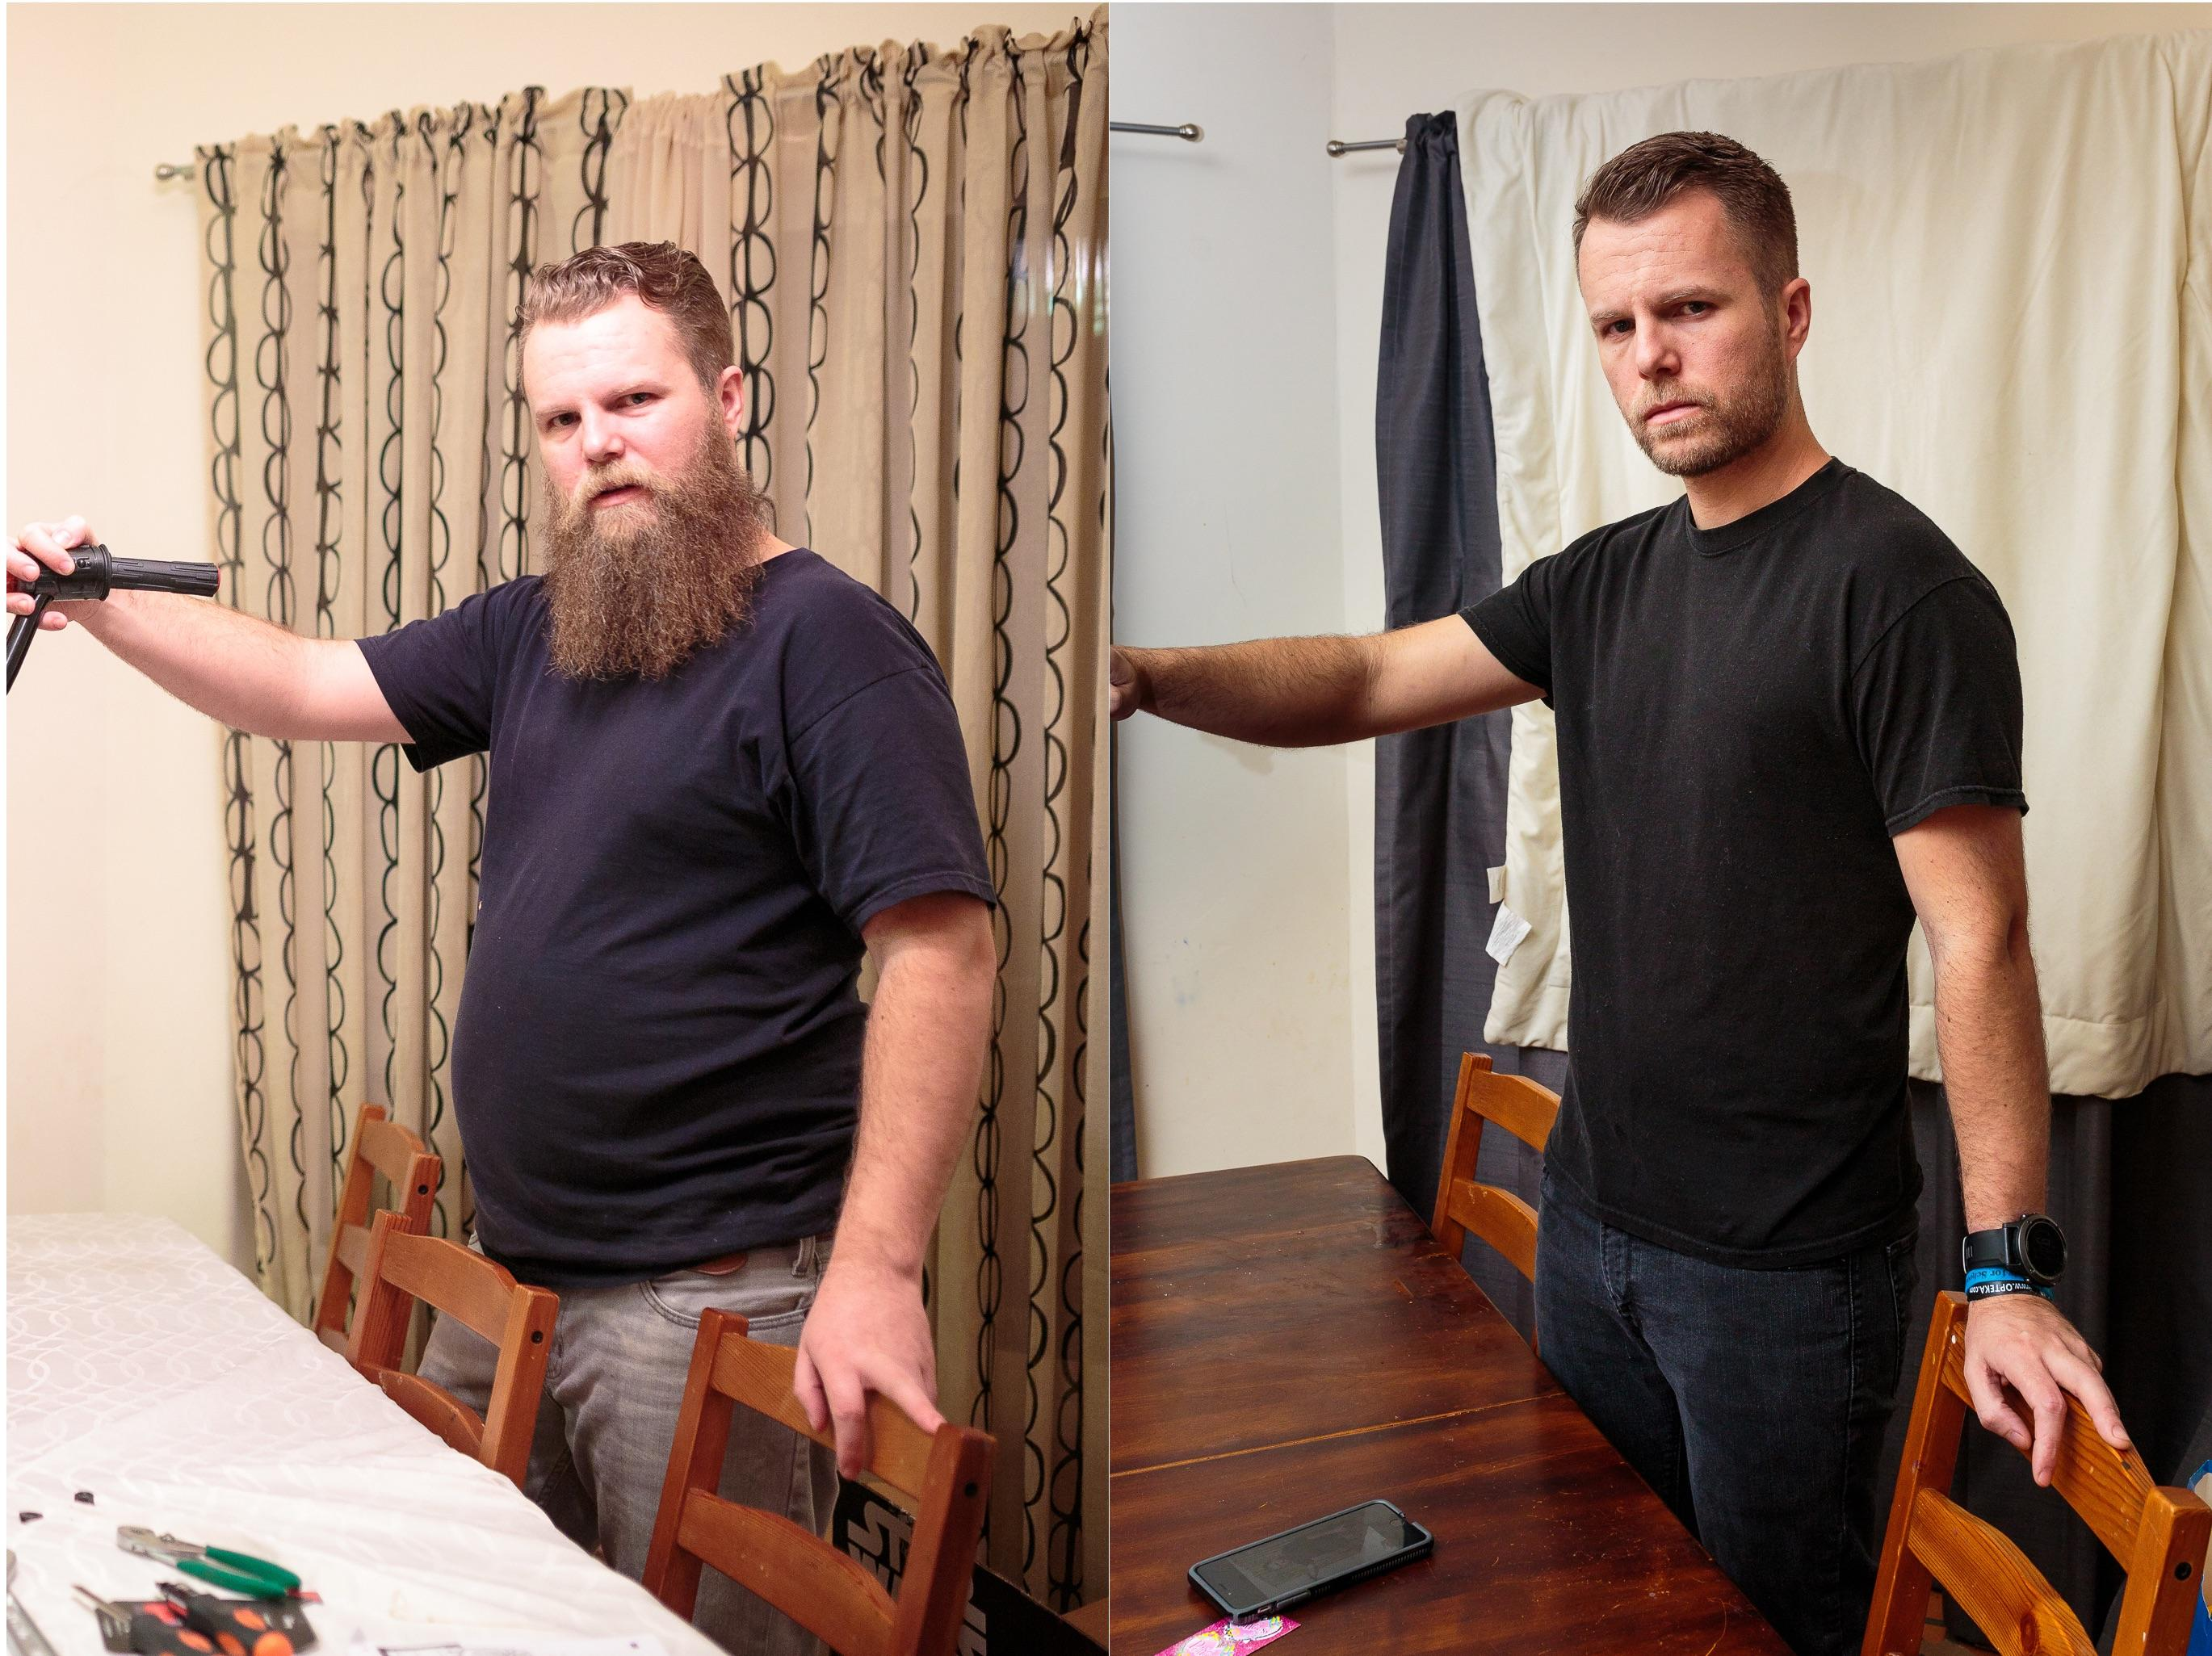 Man Shares Photos of Before and After Alcohol Addiction - ATTN: